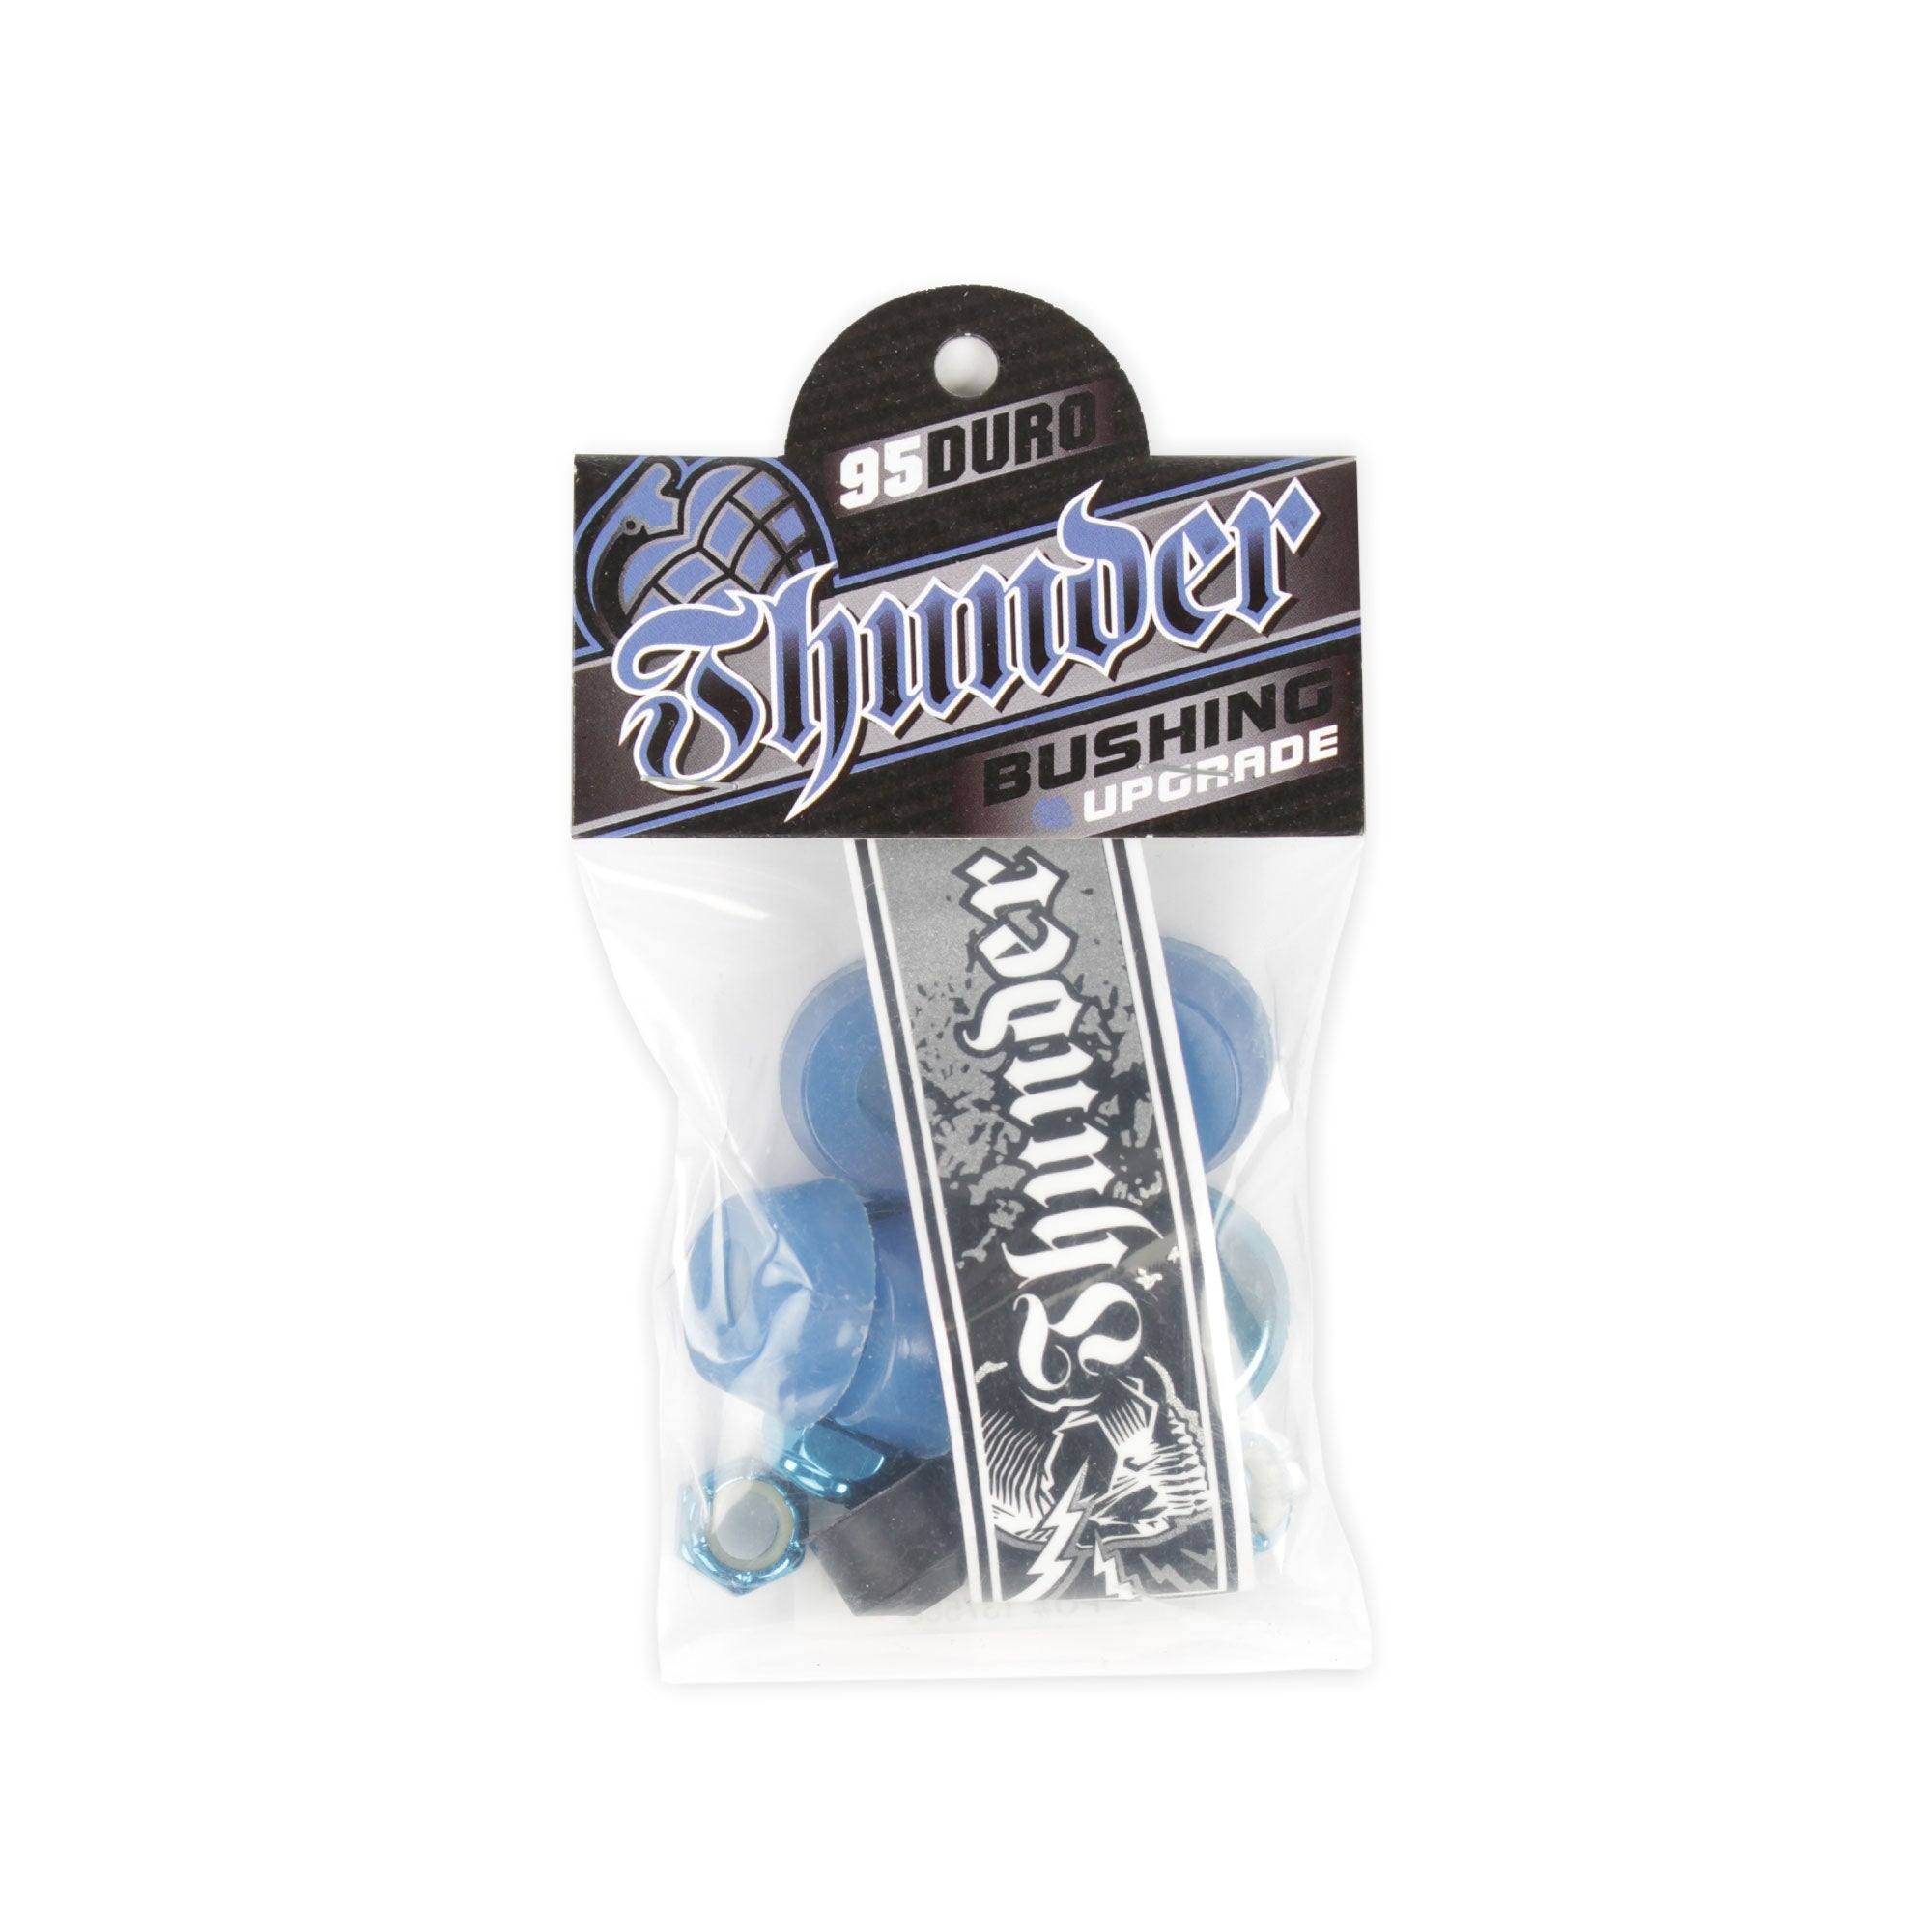 Thunder Bushings Kit Product Photo #1